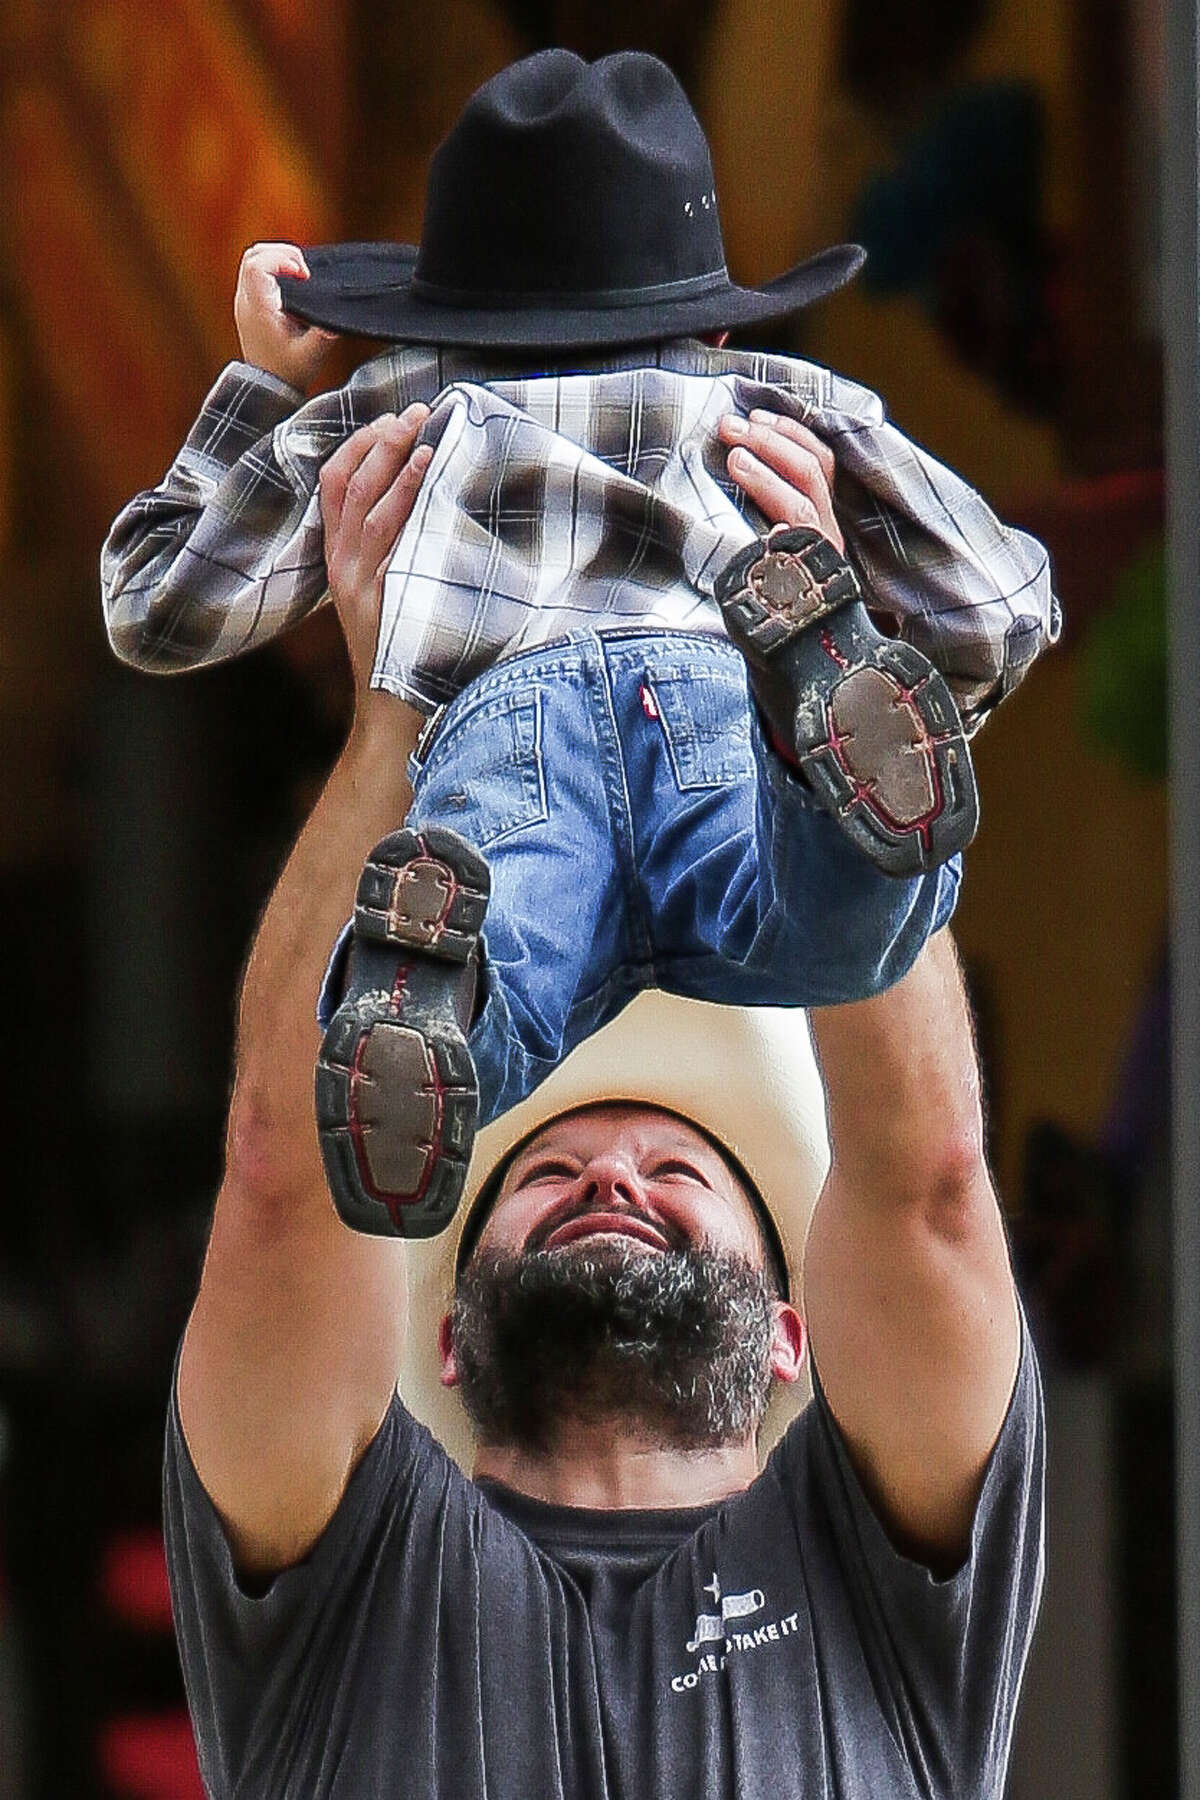 Travis Mann lifts his son, Jackson Mann, 5, in the air on the opening day of the Houston Livestock Show and Rodeo Tuesday, March 7, 2017 in Houston.